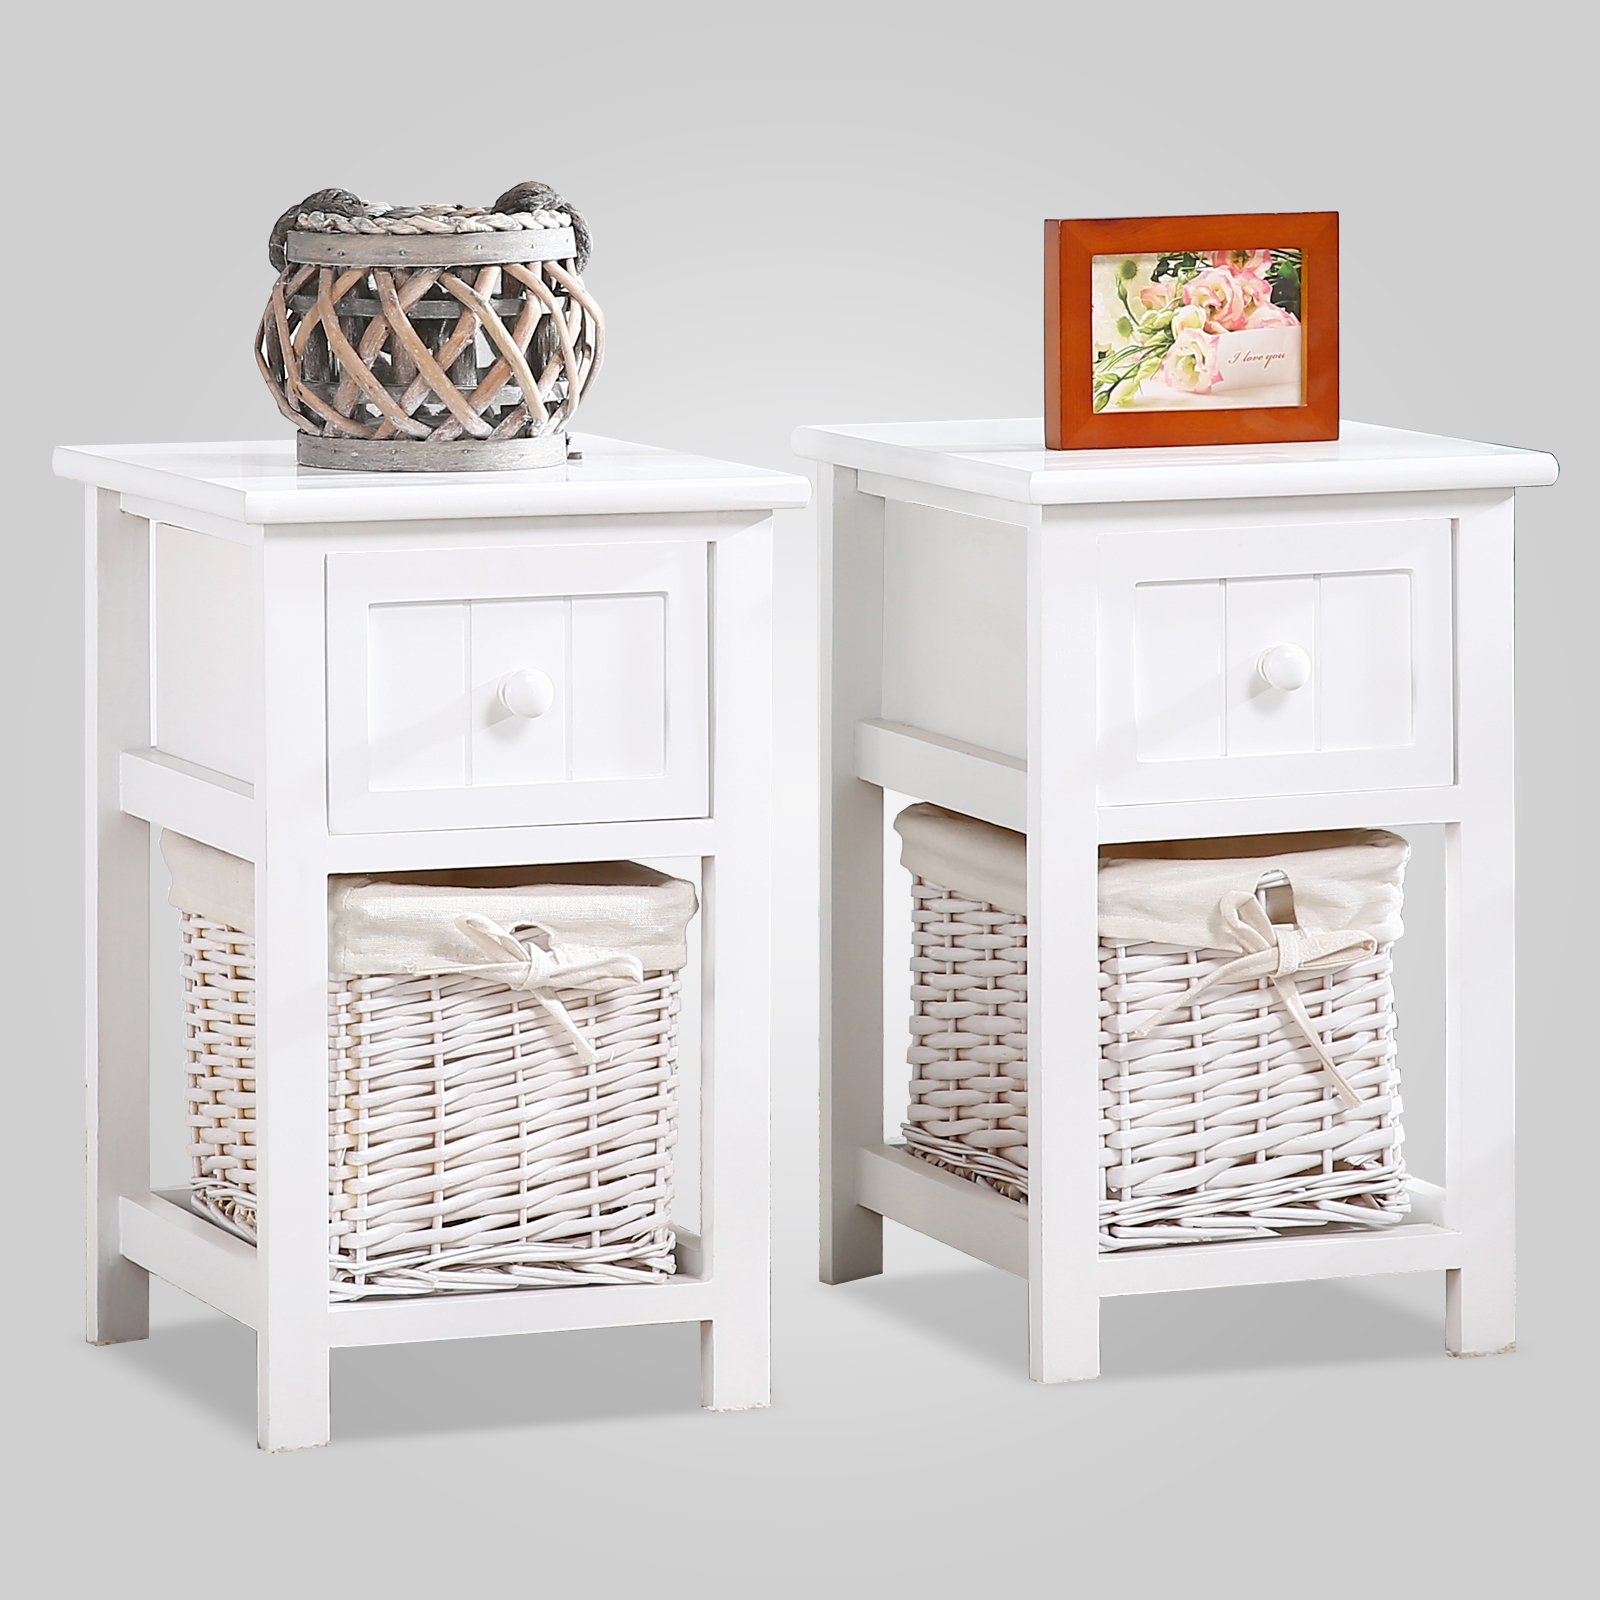 Pair of Retro White Chic Nightstand End Side Bedside Table w Wicker Storage Wood